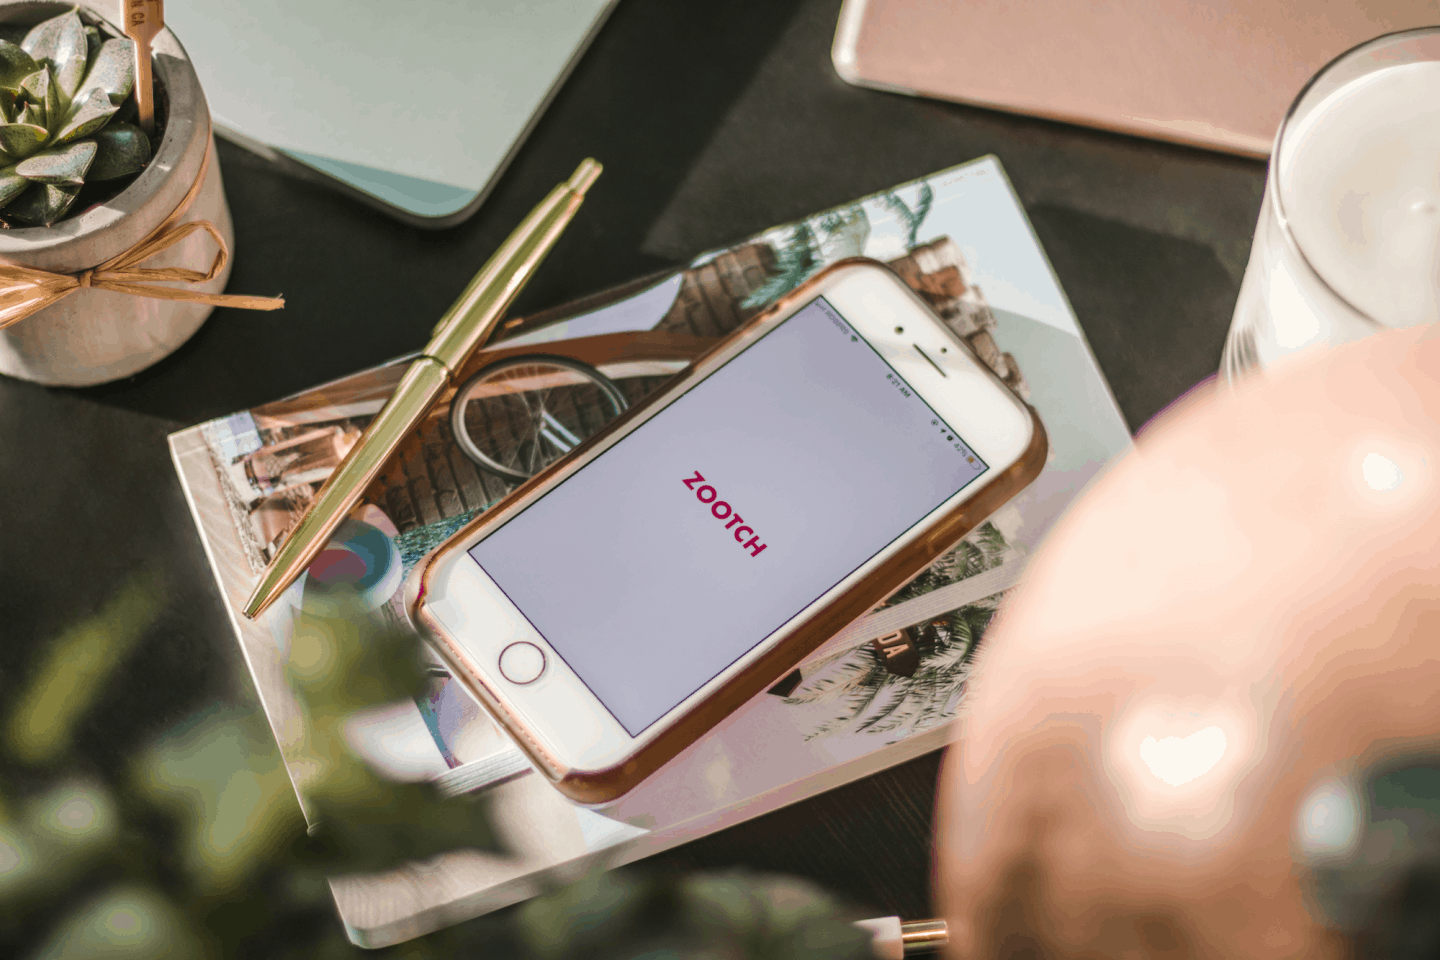 Things every Toronto student needs to know | best tips for Toronto students at Ryerson University, University of Toronto, and York University | Zootch app | Diary of a Toronto Girl, a Canadian lifestyle blog